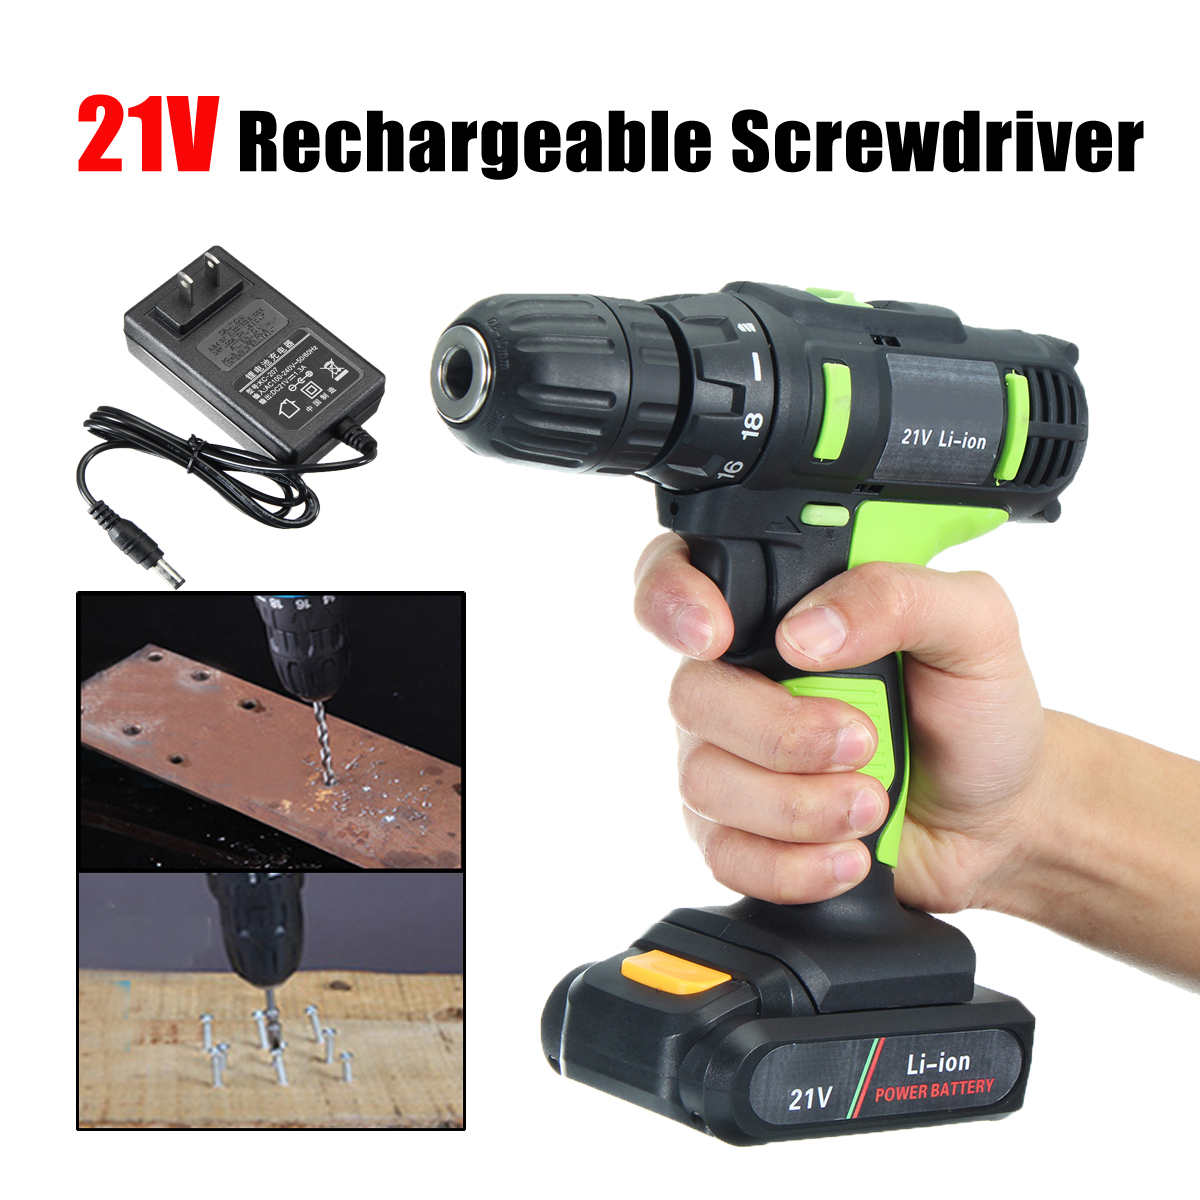 21V Li-ion Electric Screwdriver Rechargeable Electric Charging Power Drill Two Speed 30-45Nm Hand Tools